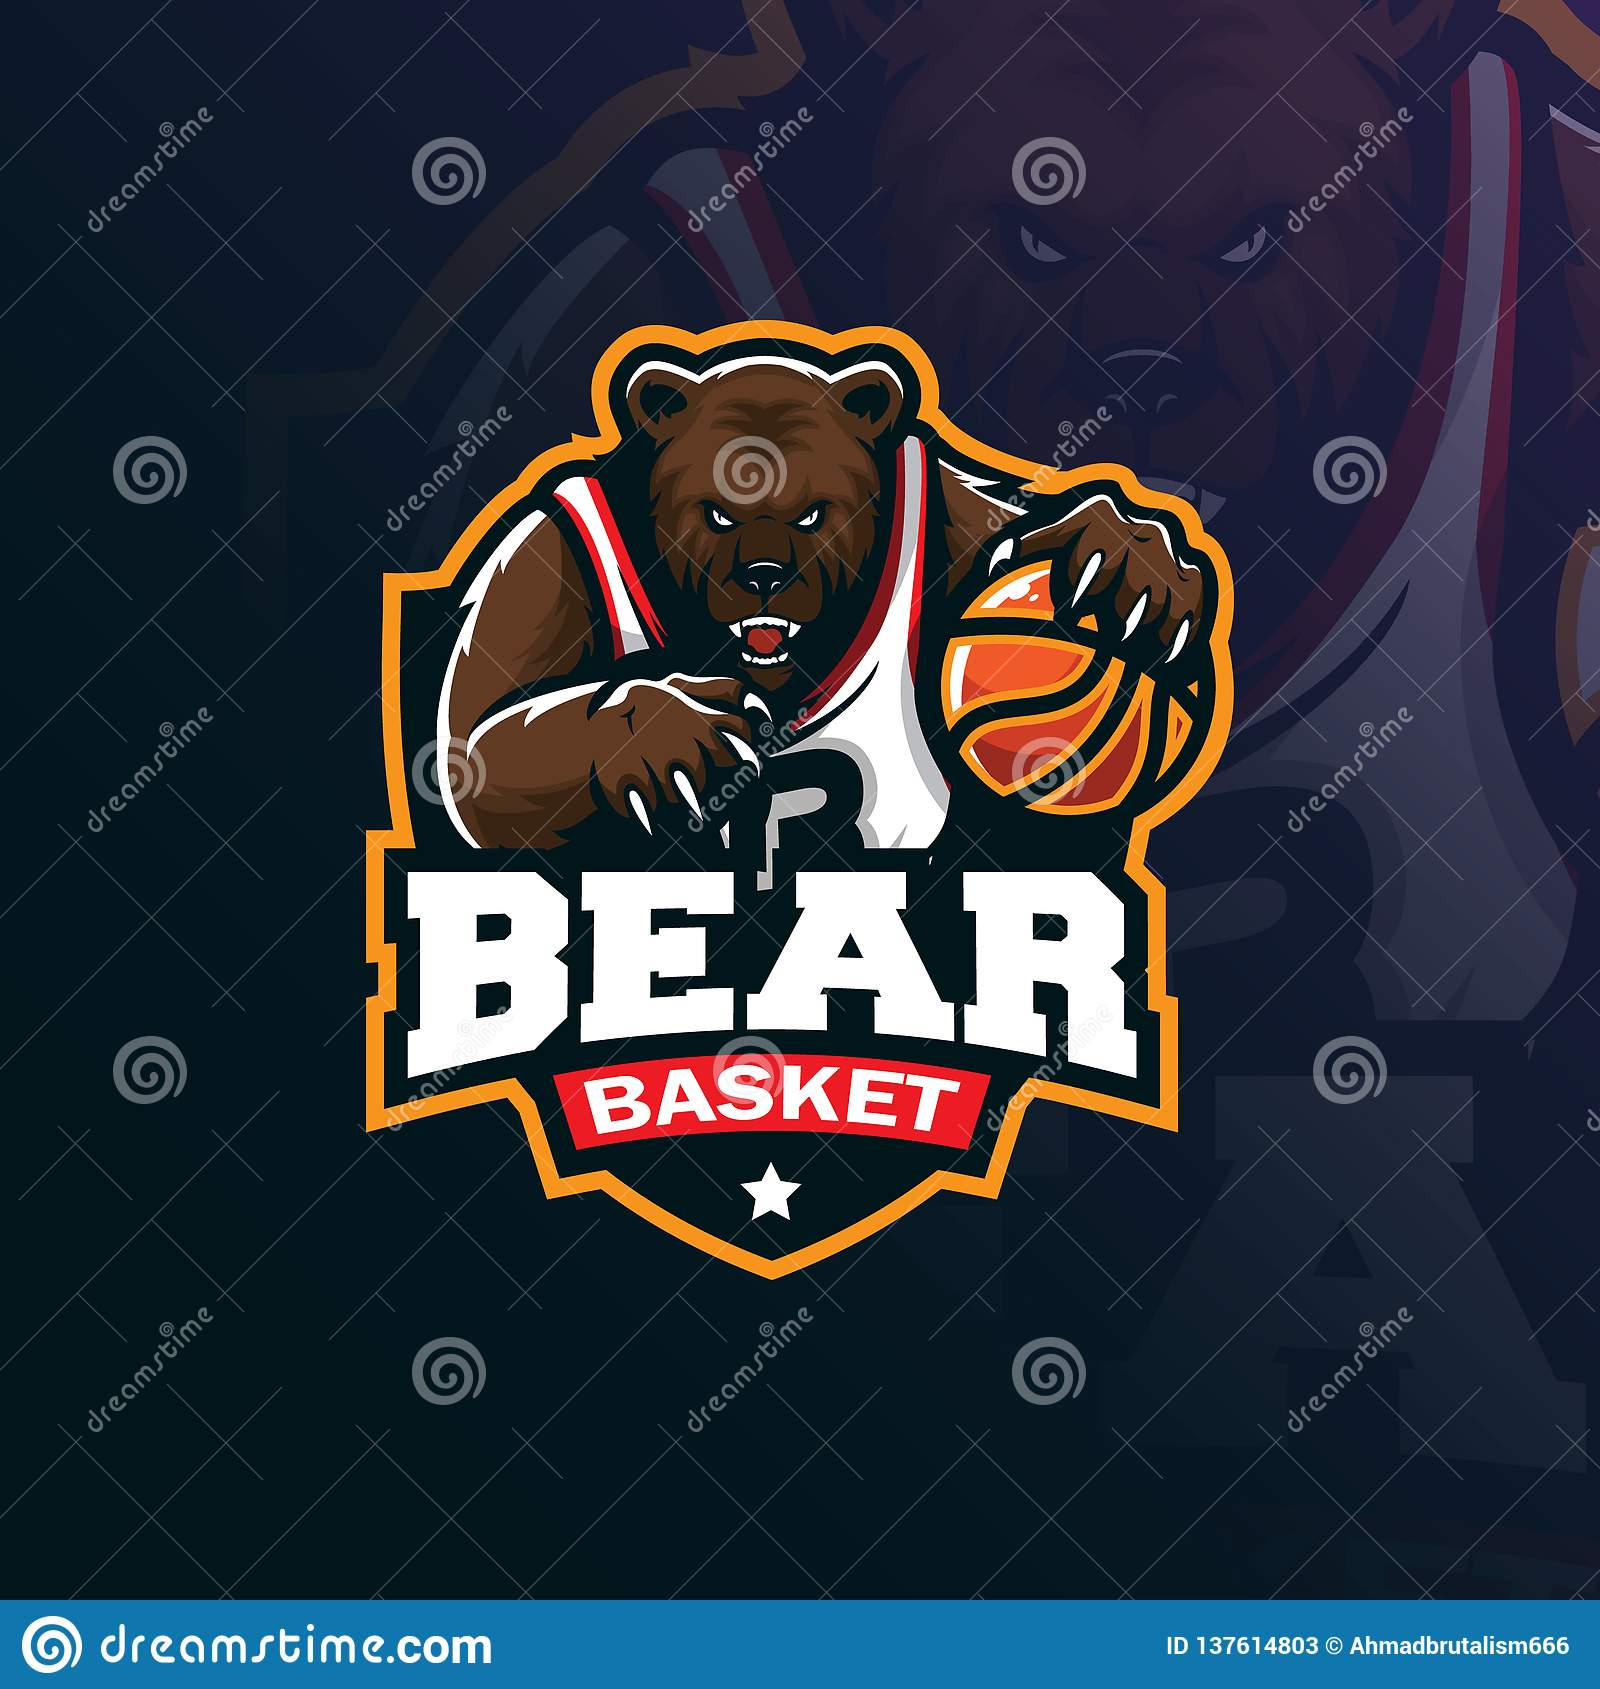 Bear basketball mascot logo design vector with modern illustration concept style for badge, emblem and tshirt printing. angry bear